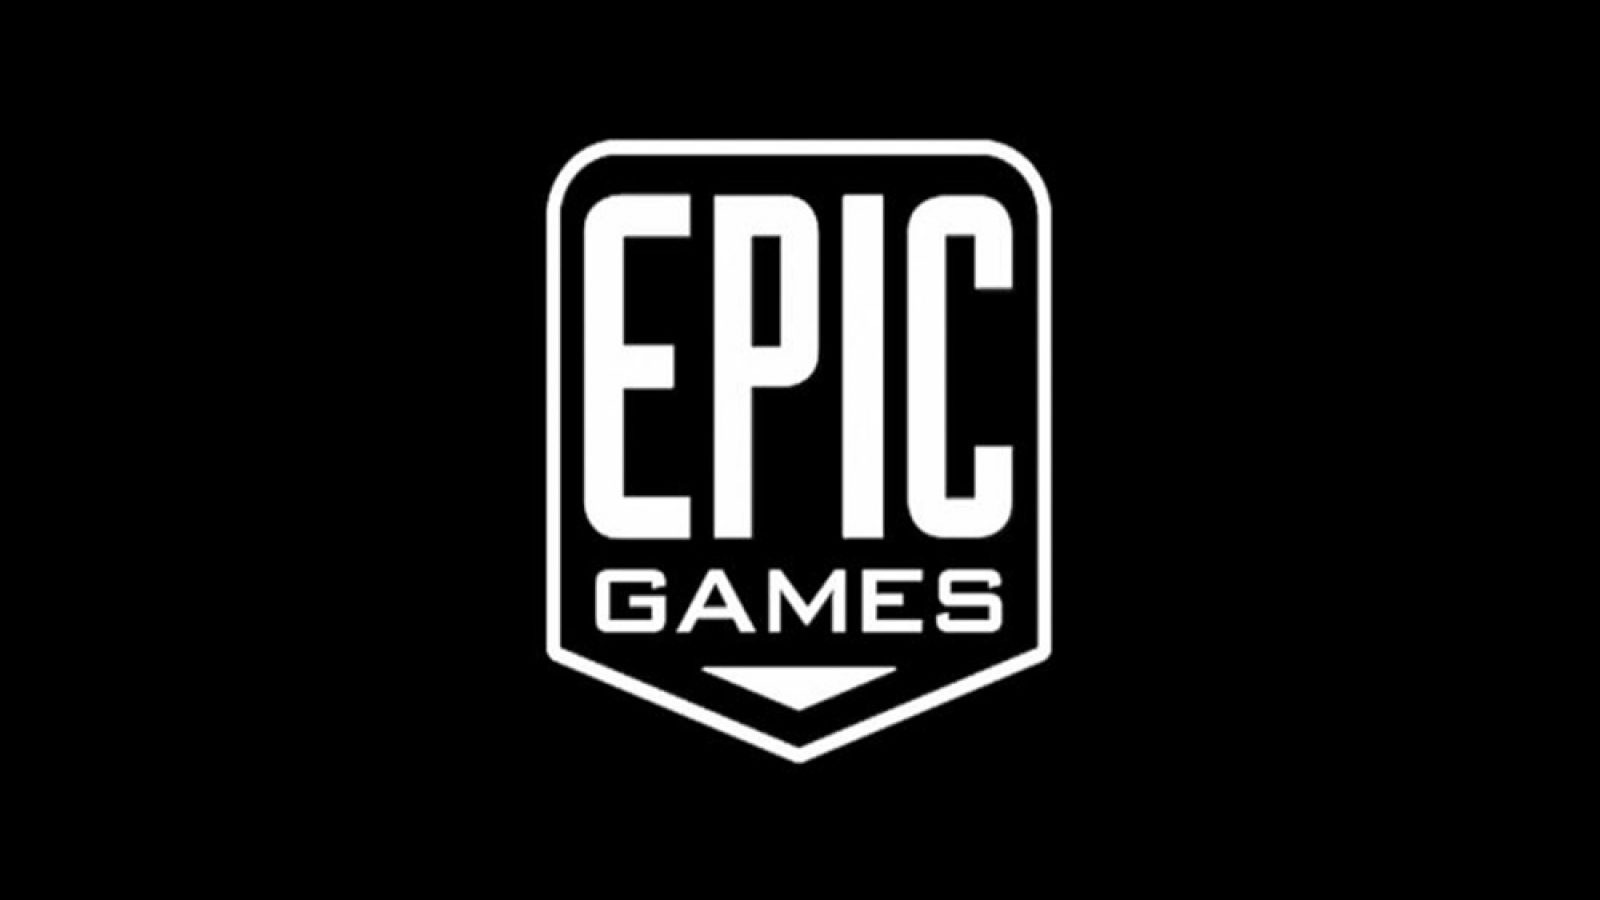 Employees working for Epic Games are complaining about the company